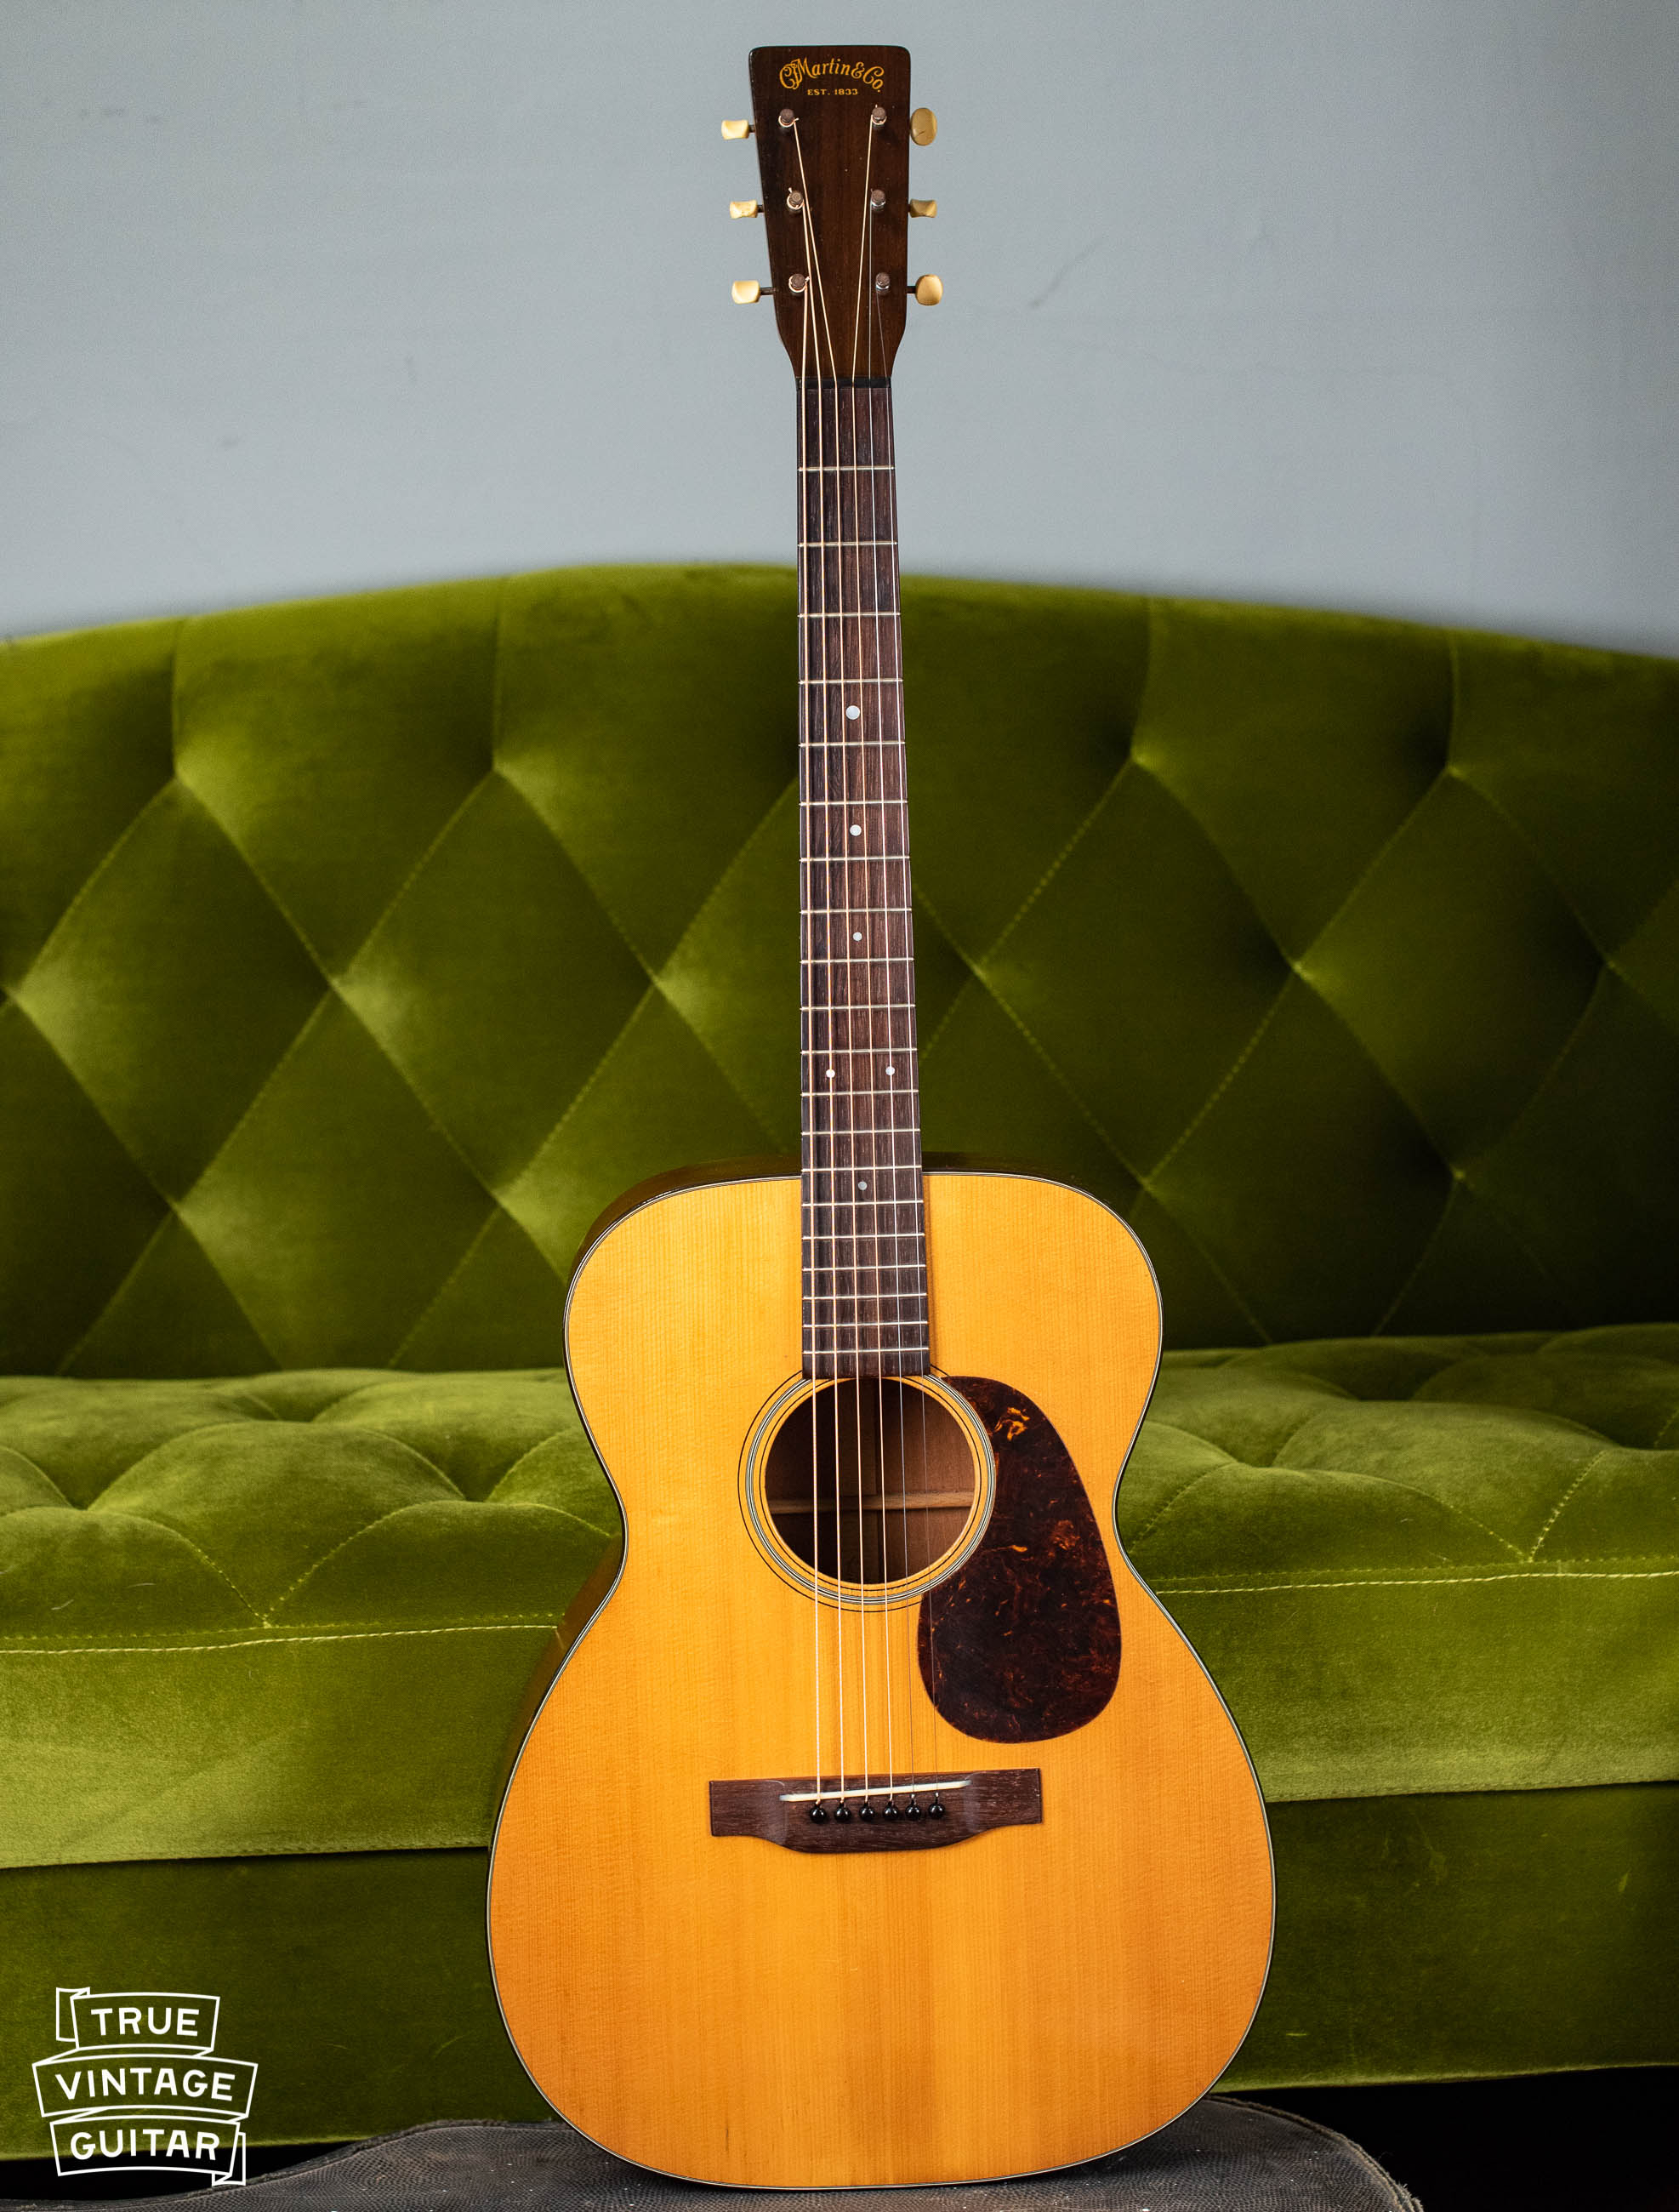 Where to sell vintage Martin guitars